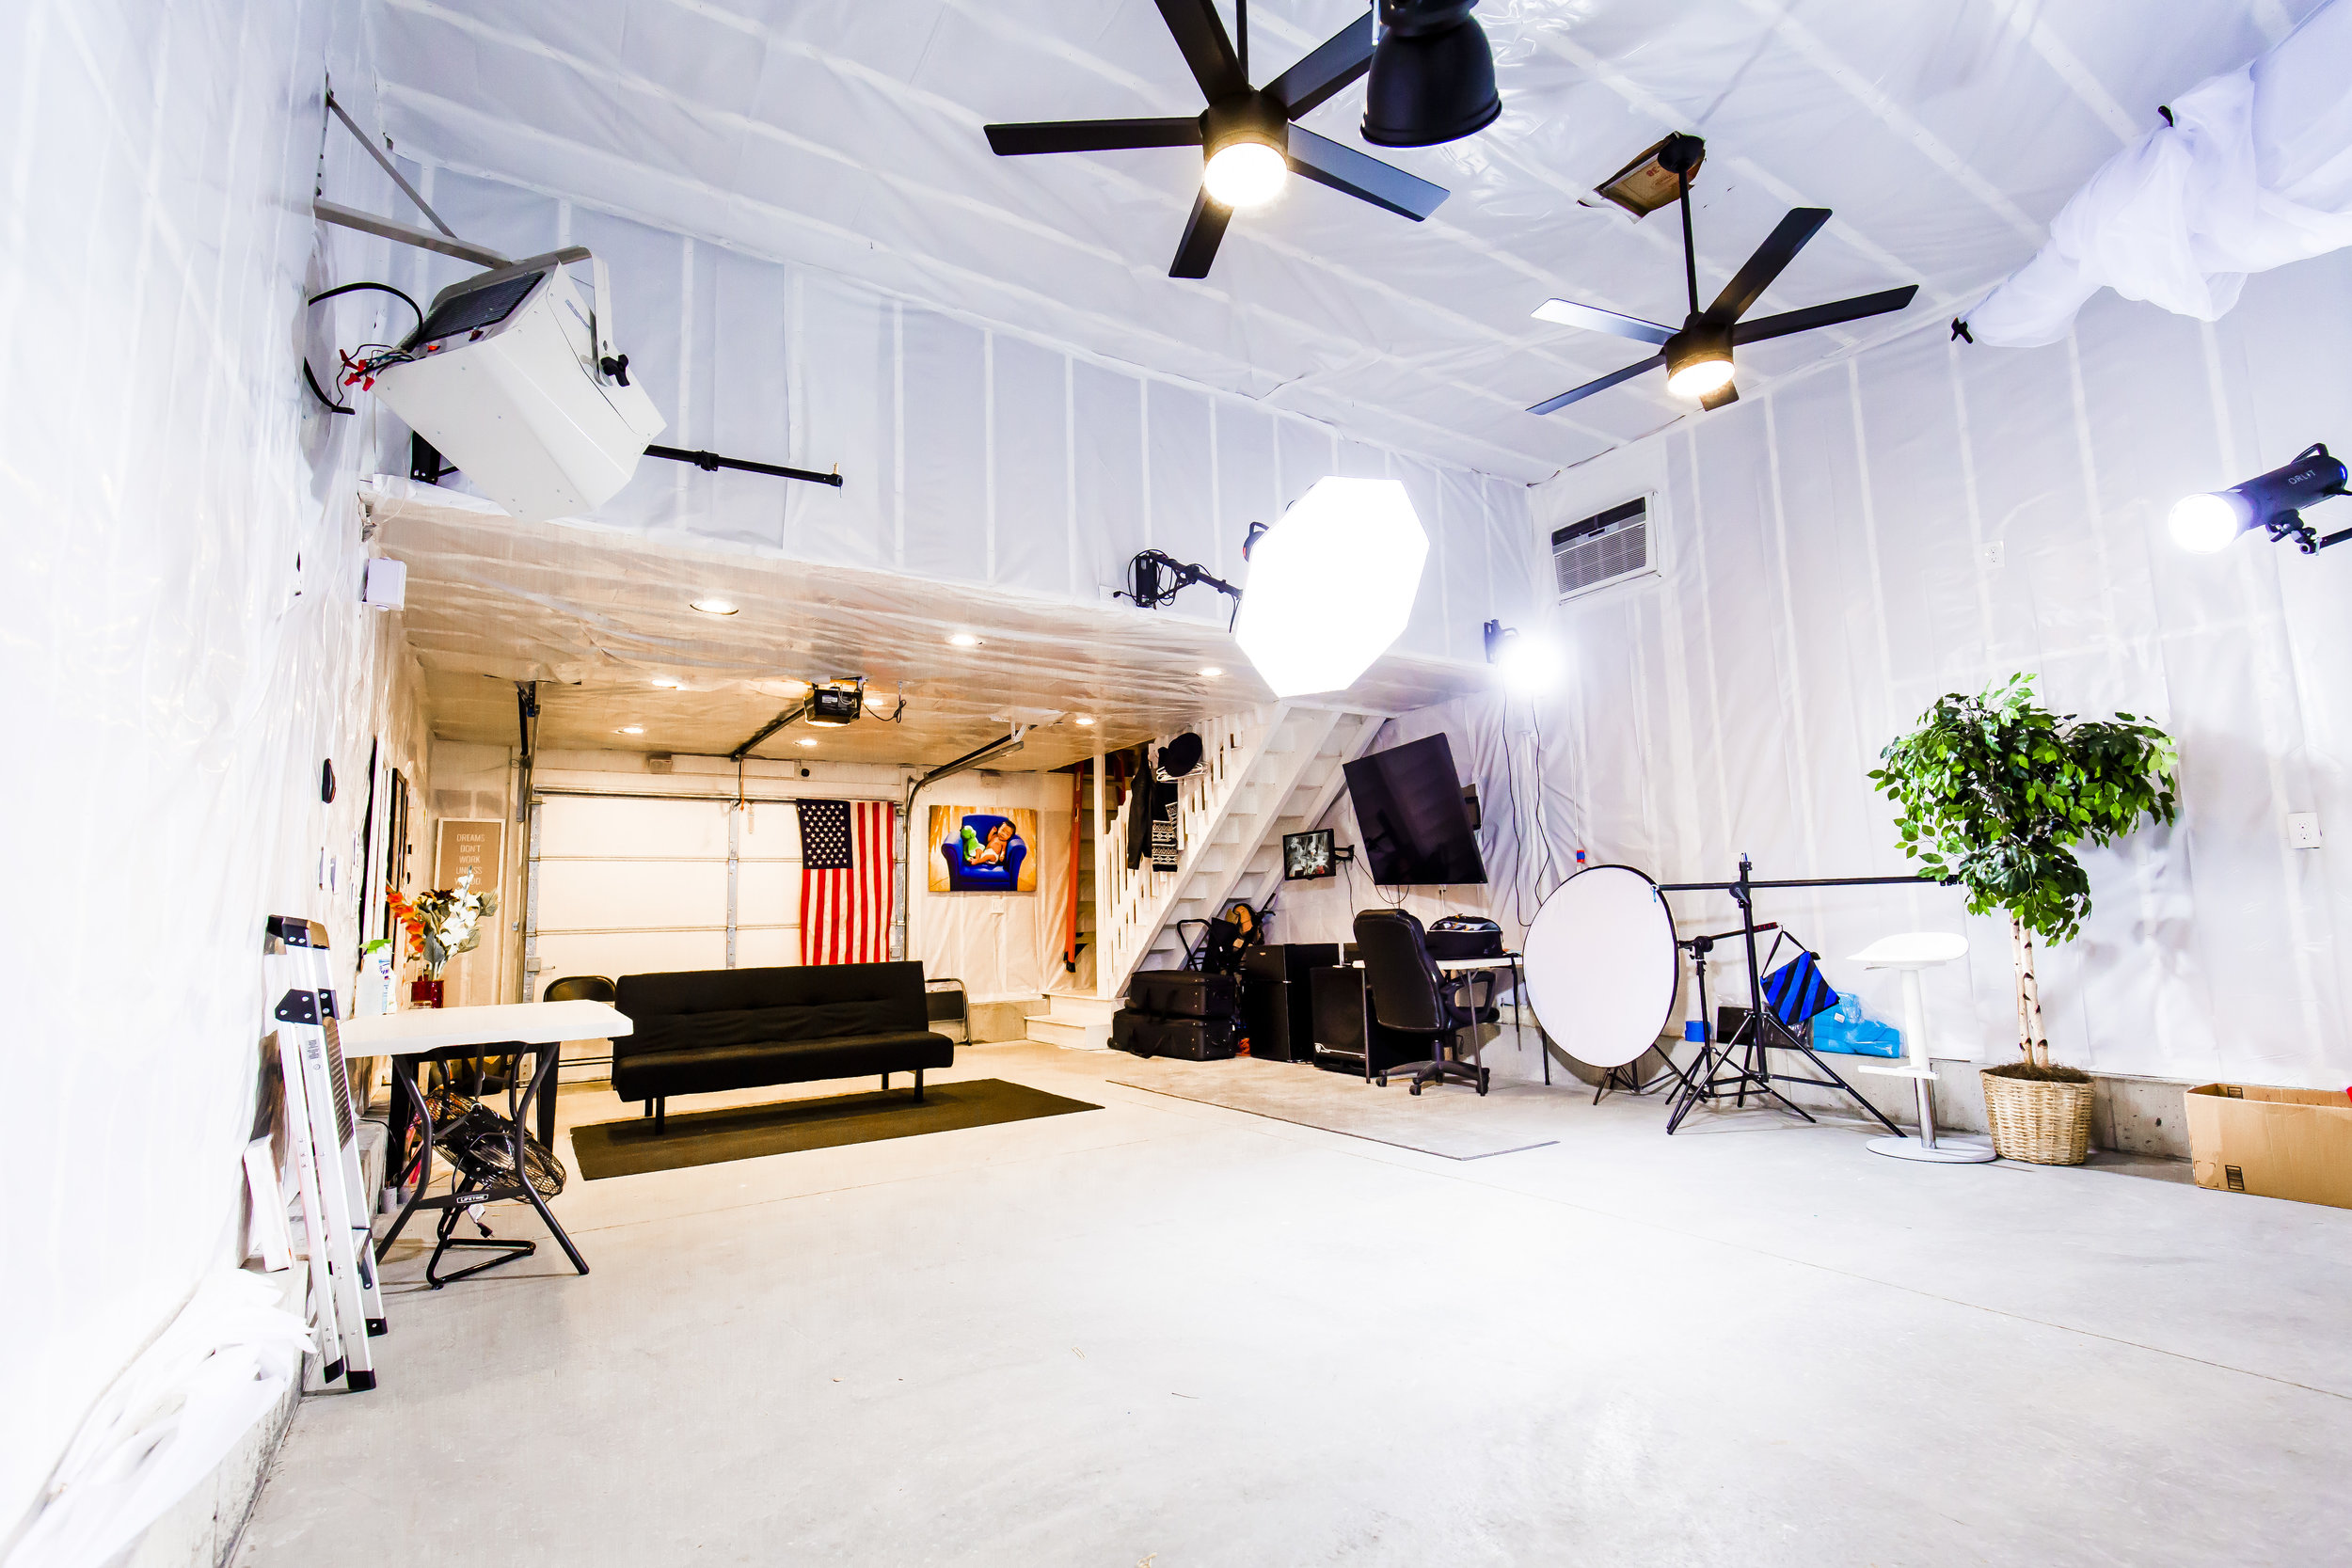 314A1188-Boston Studio Rental-Photography - Videography - Film - Event space - Affordable.jpg